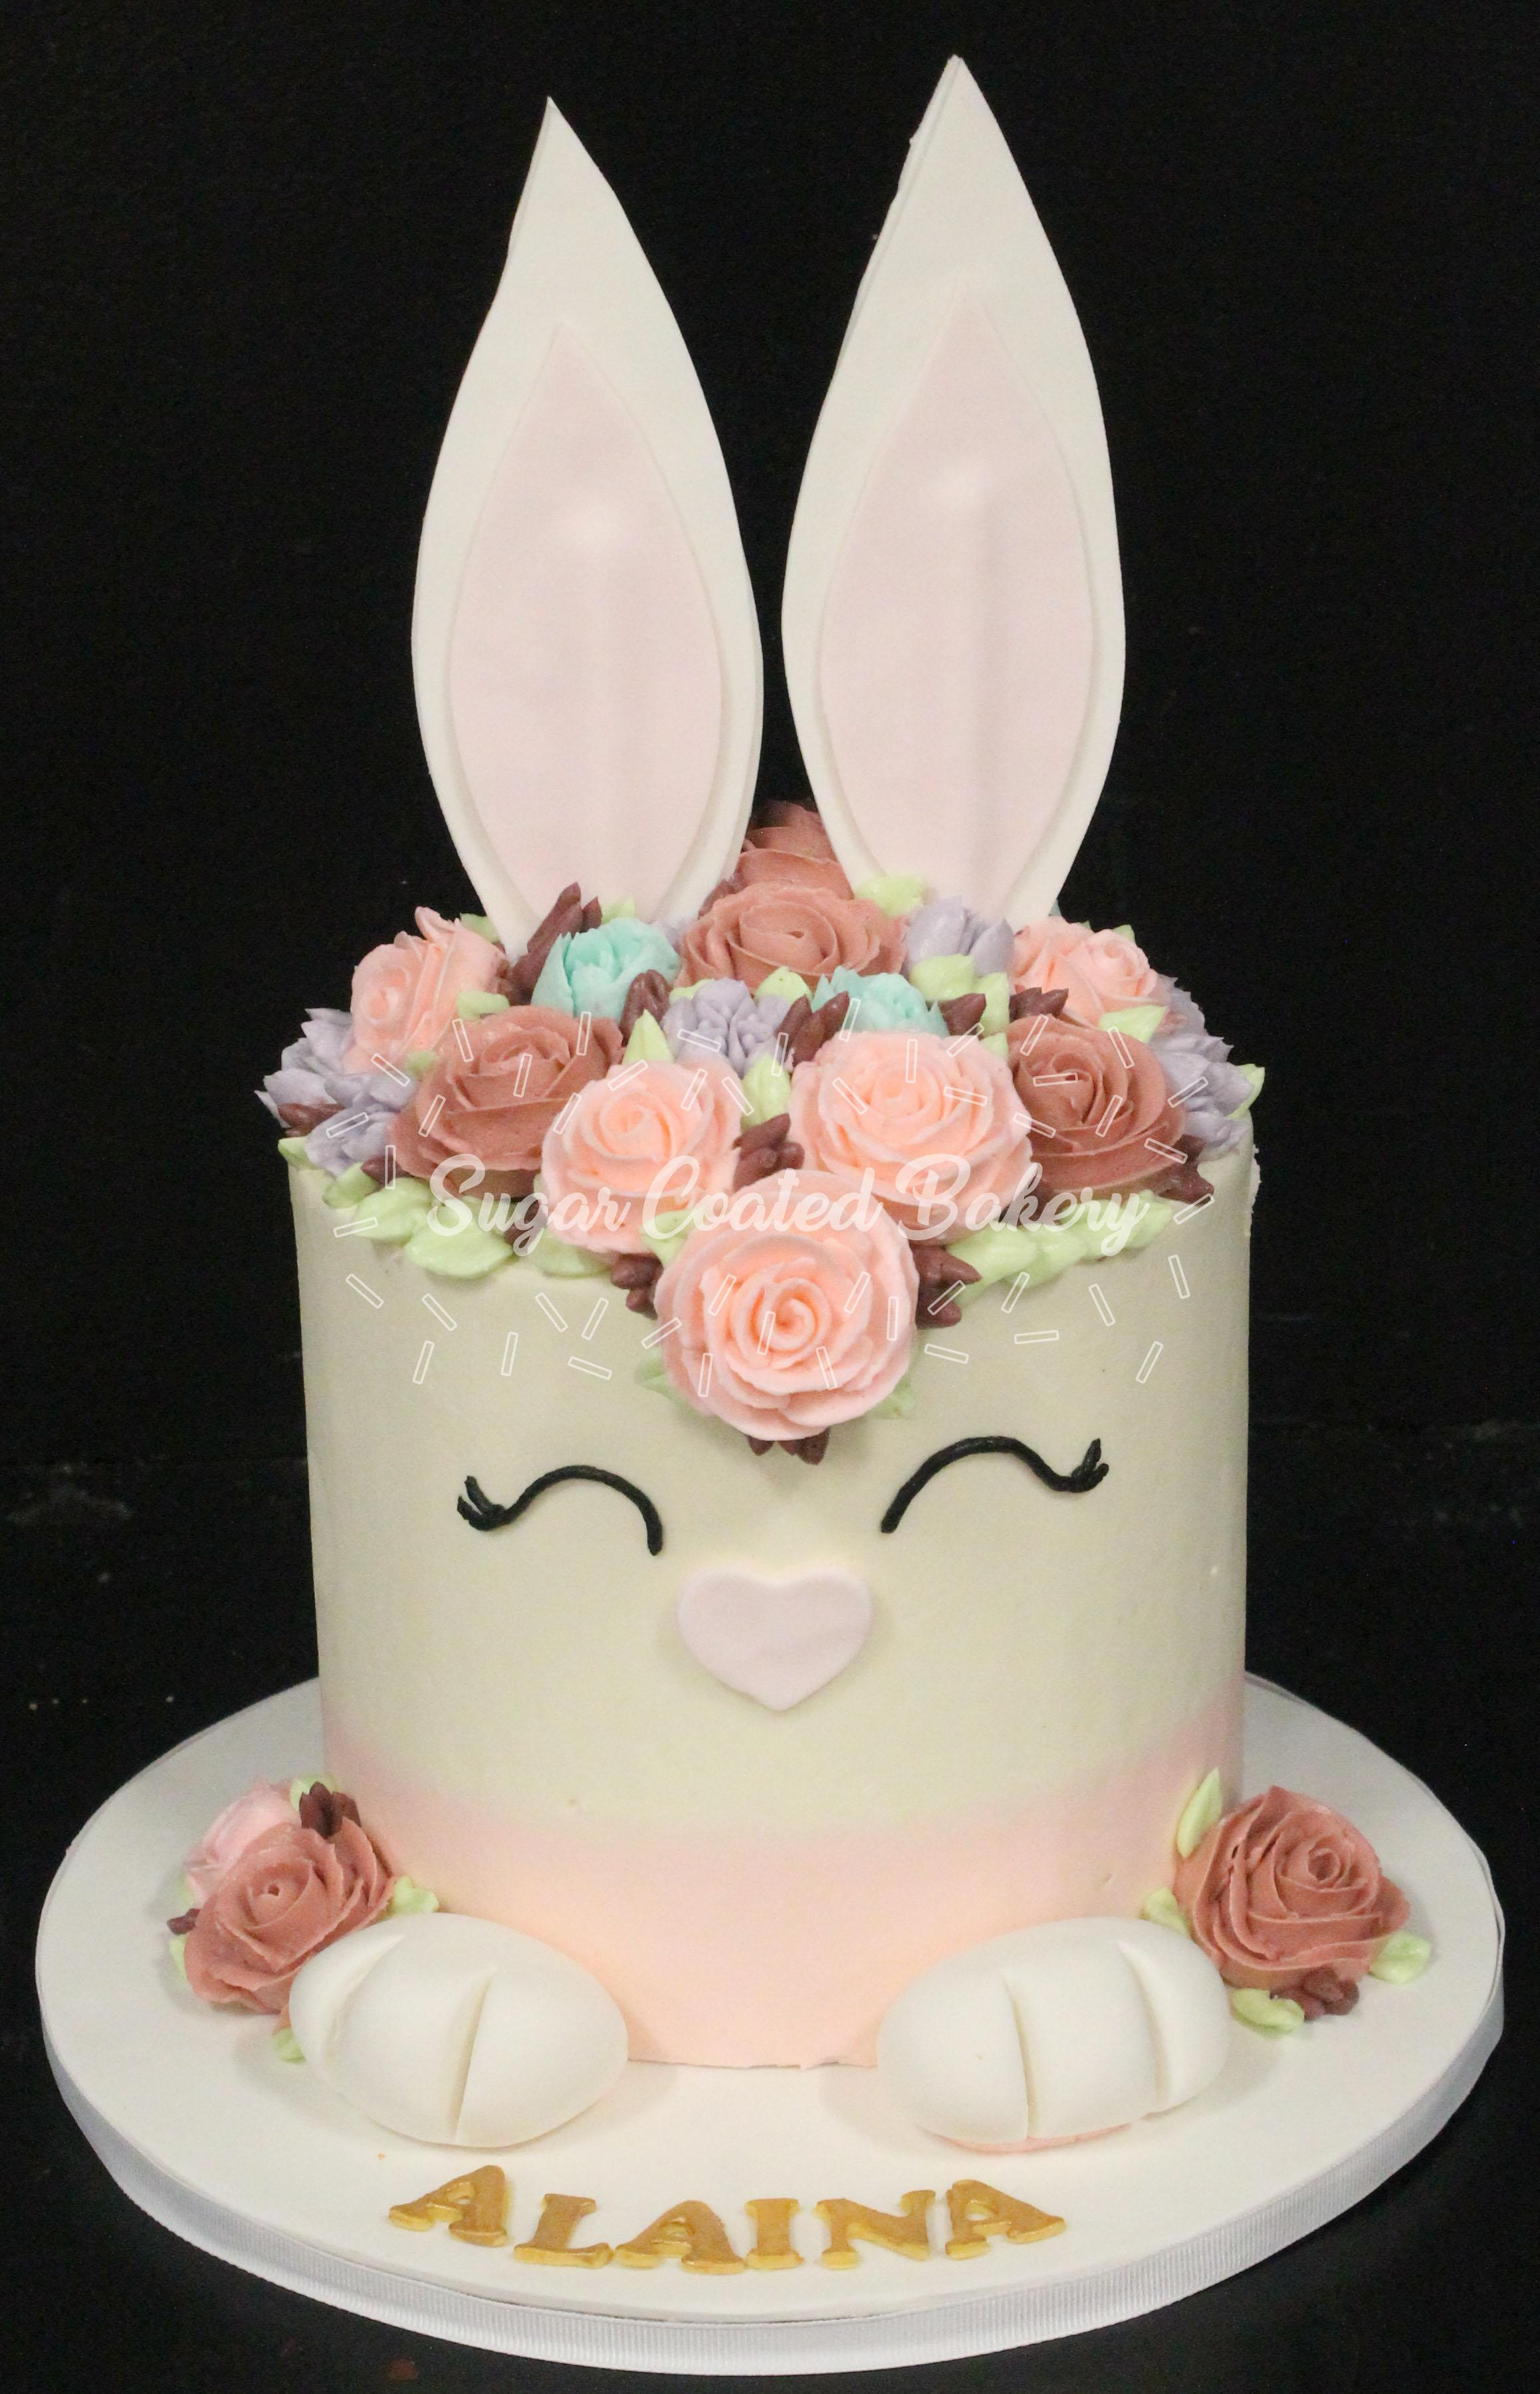 Bunny Birthday Cake Sugar Coated Bakery Lowell Baking Everyday Better